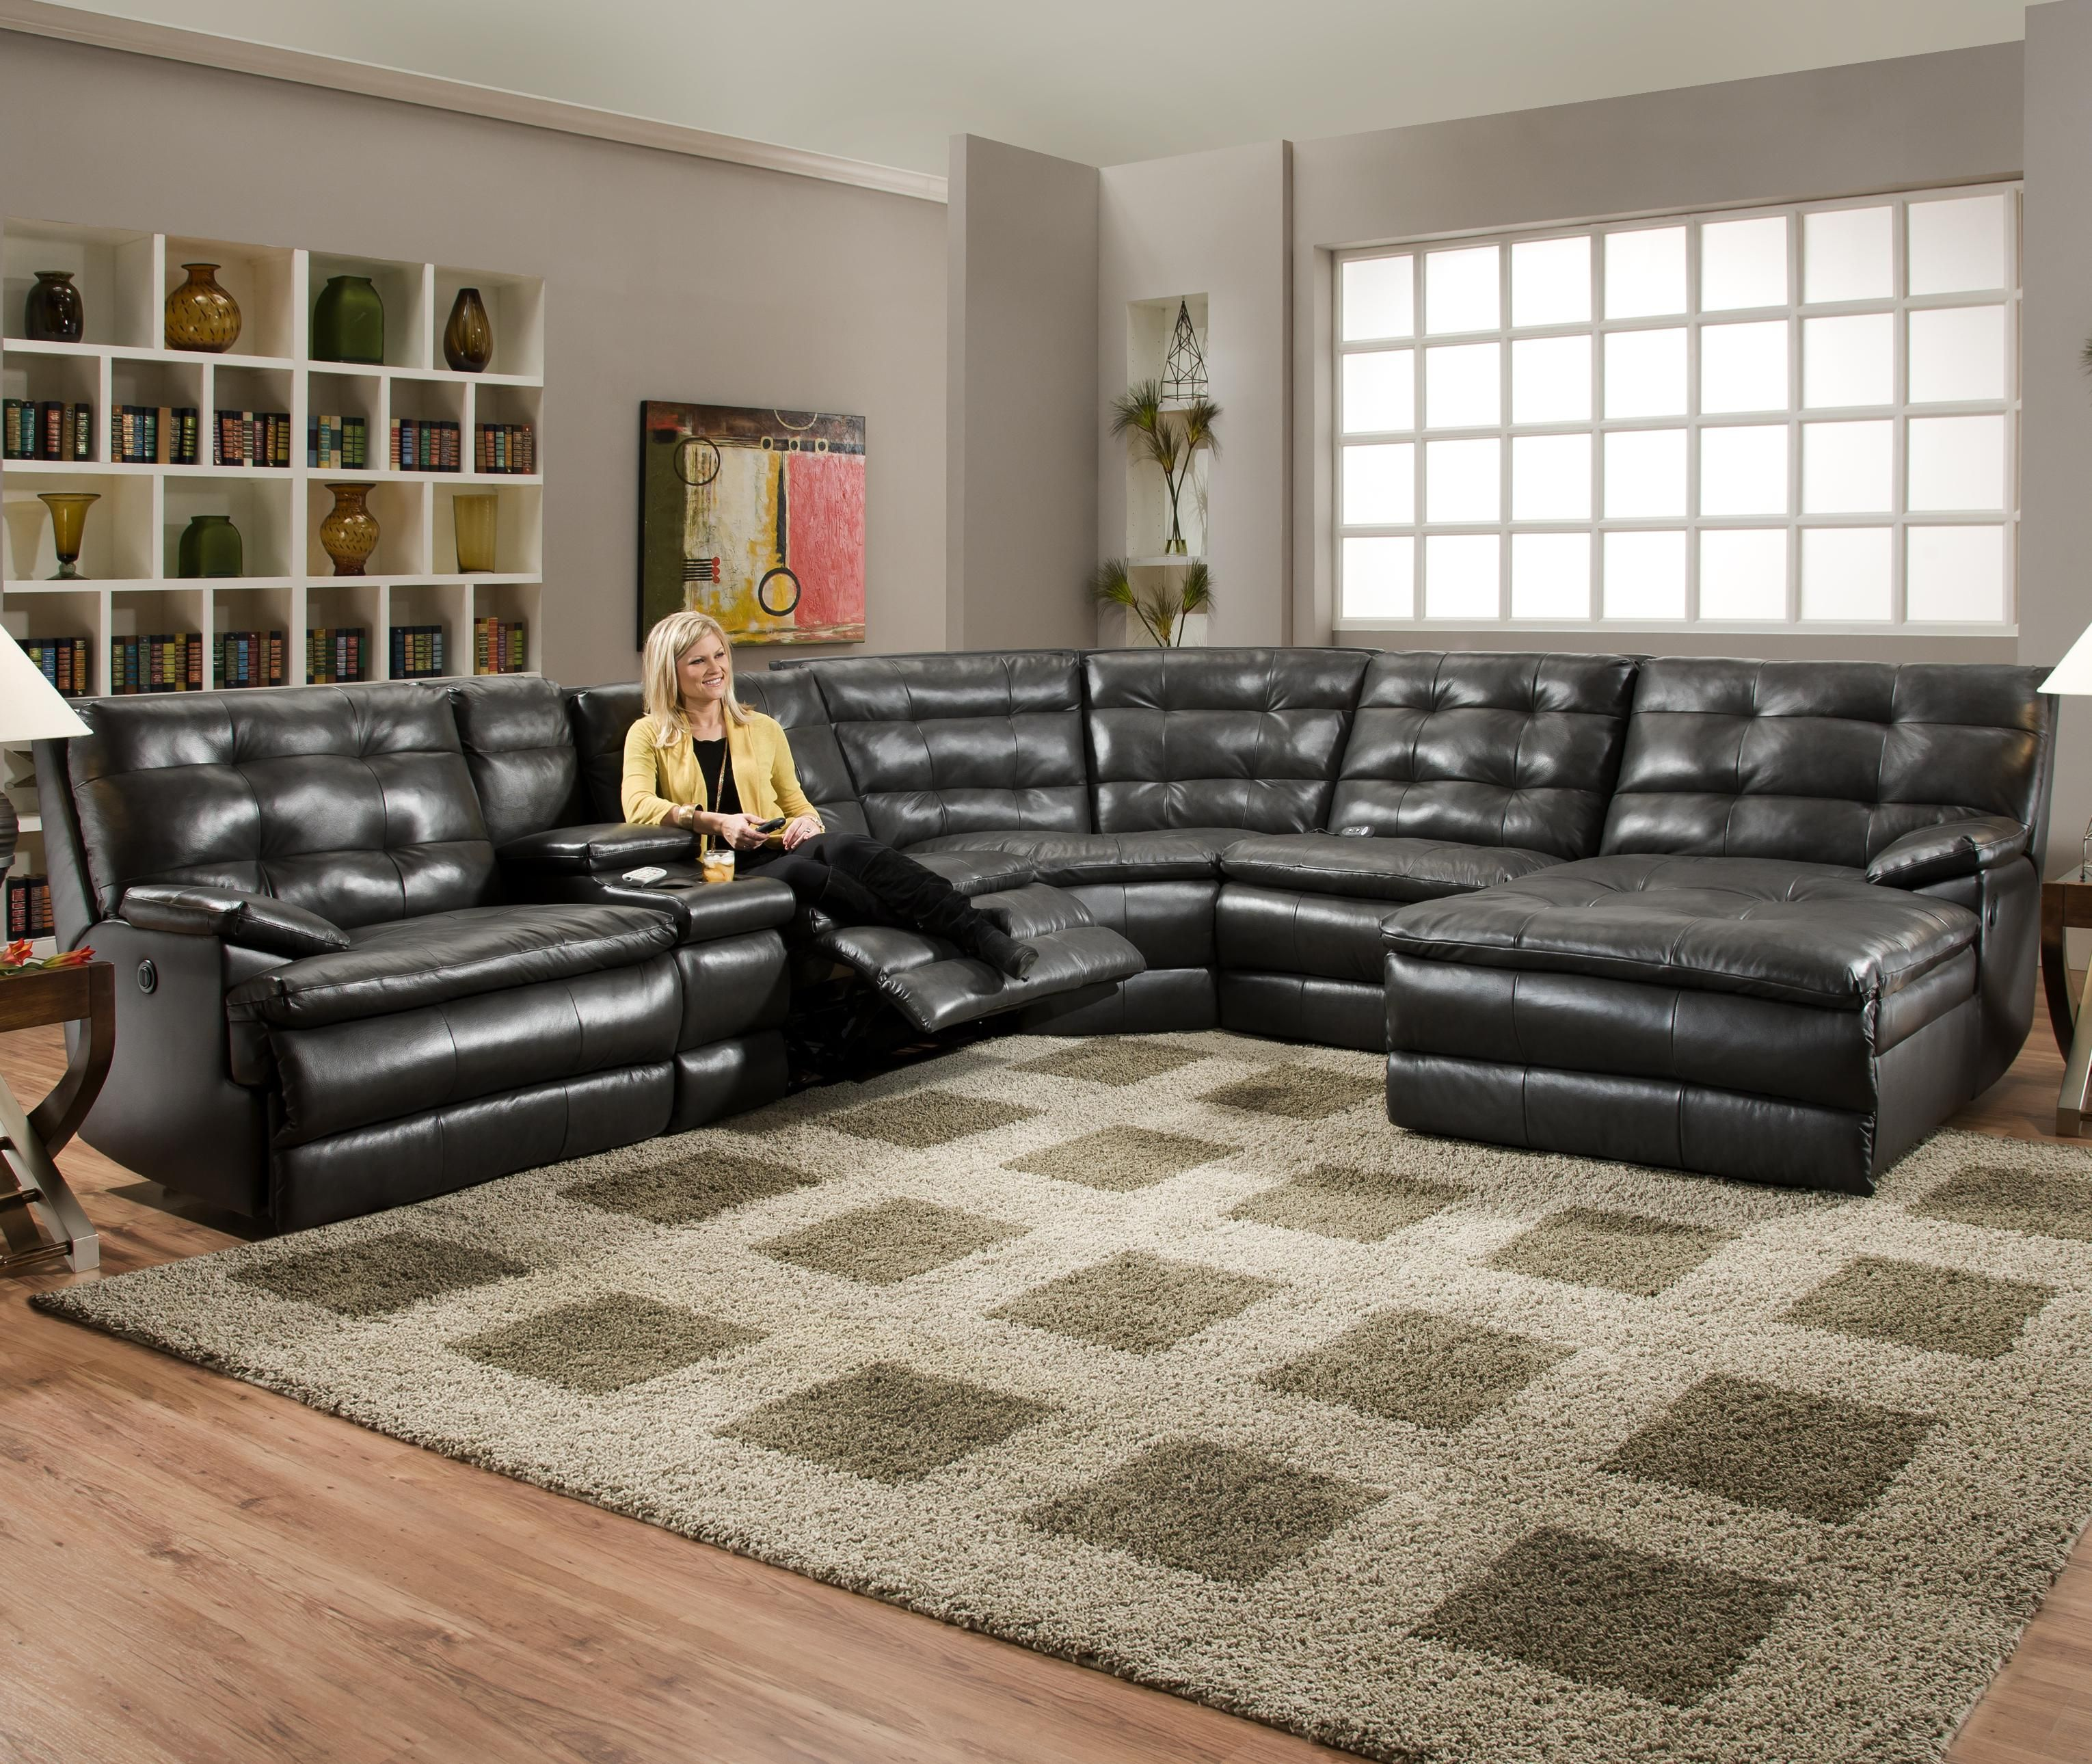 gallery sectional awesome usasectional the leather concept image salesectional on with sleeper us recliner albendazole sofas couch in made archaicawful chaise sofa reclining